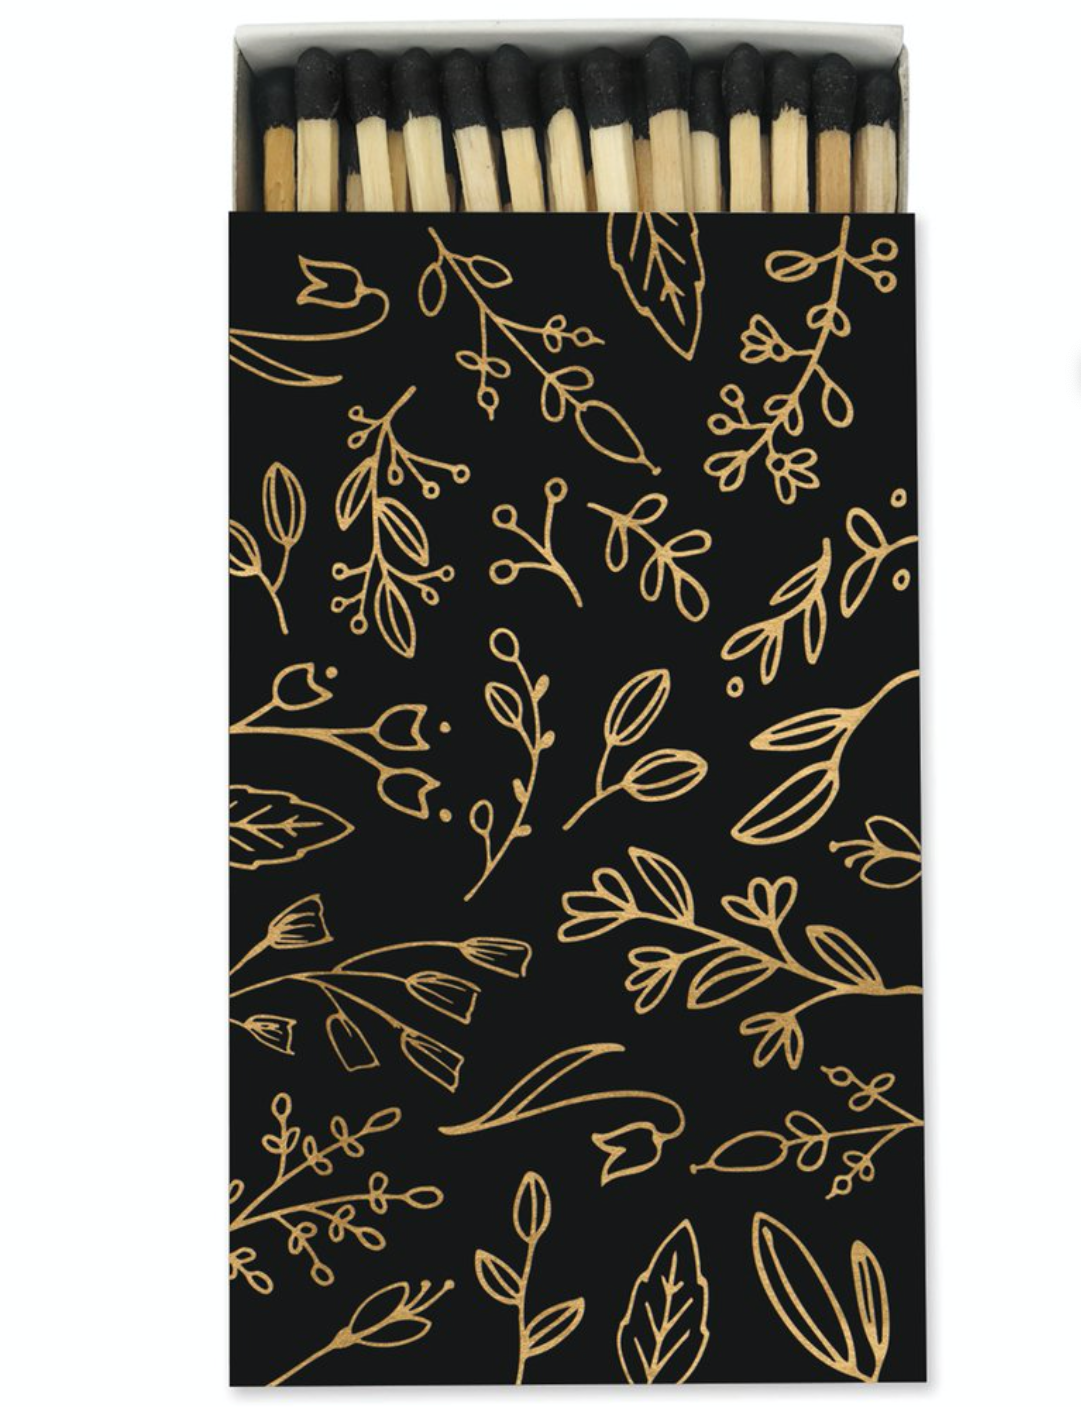 Frankie & Claude Black & Gold Foil Floral Match Box Large